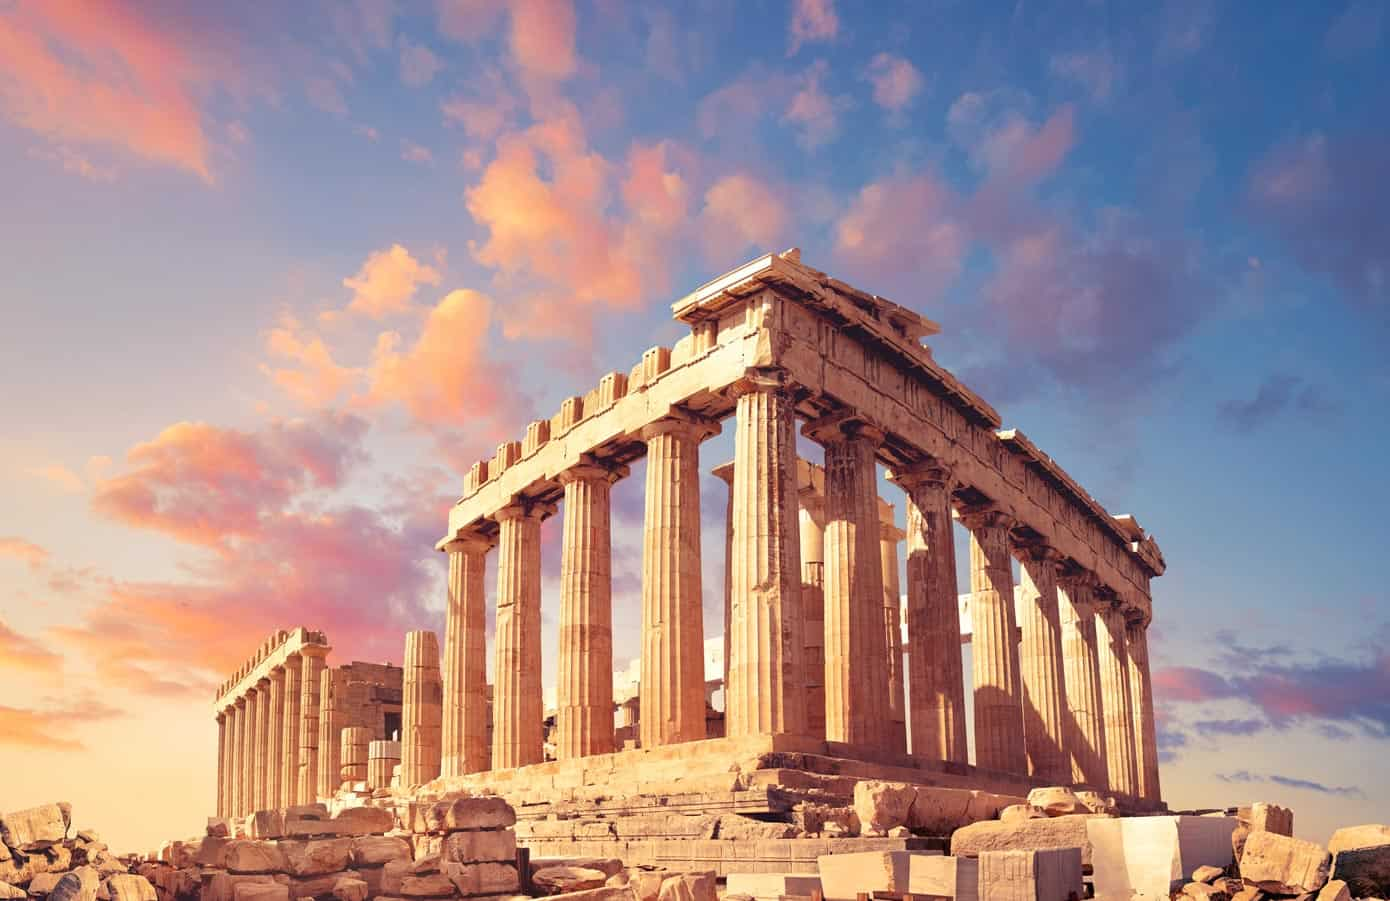 Ancient Parthenon on the Acropolis in Athens, Greece at sunset.